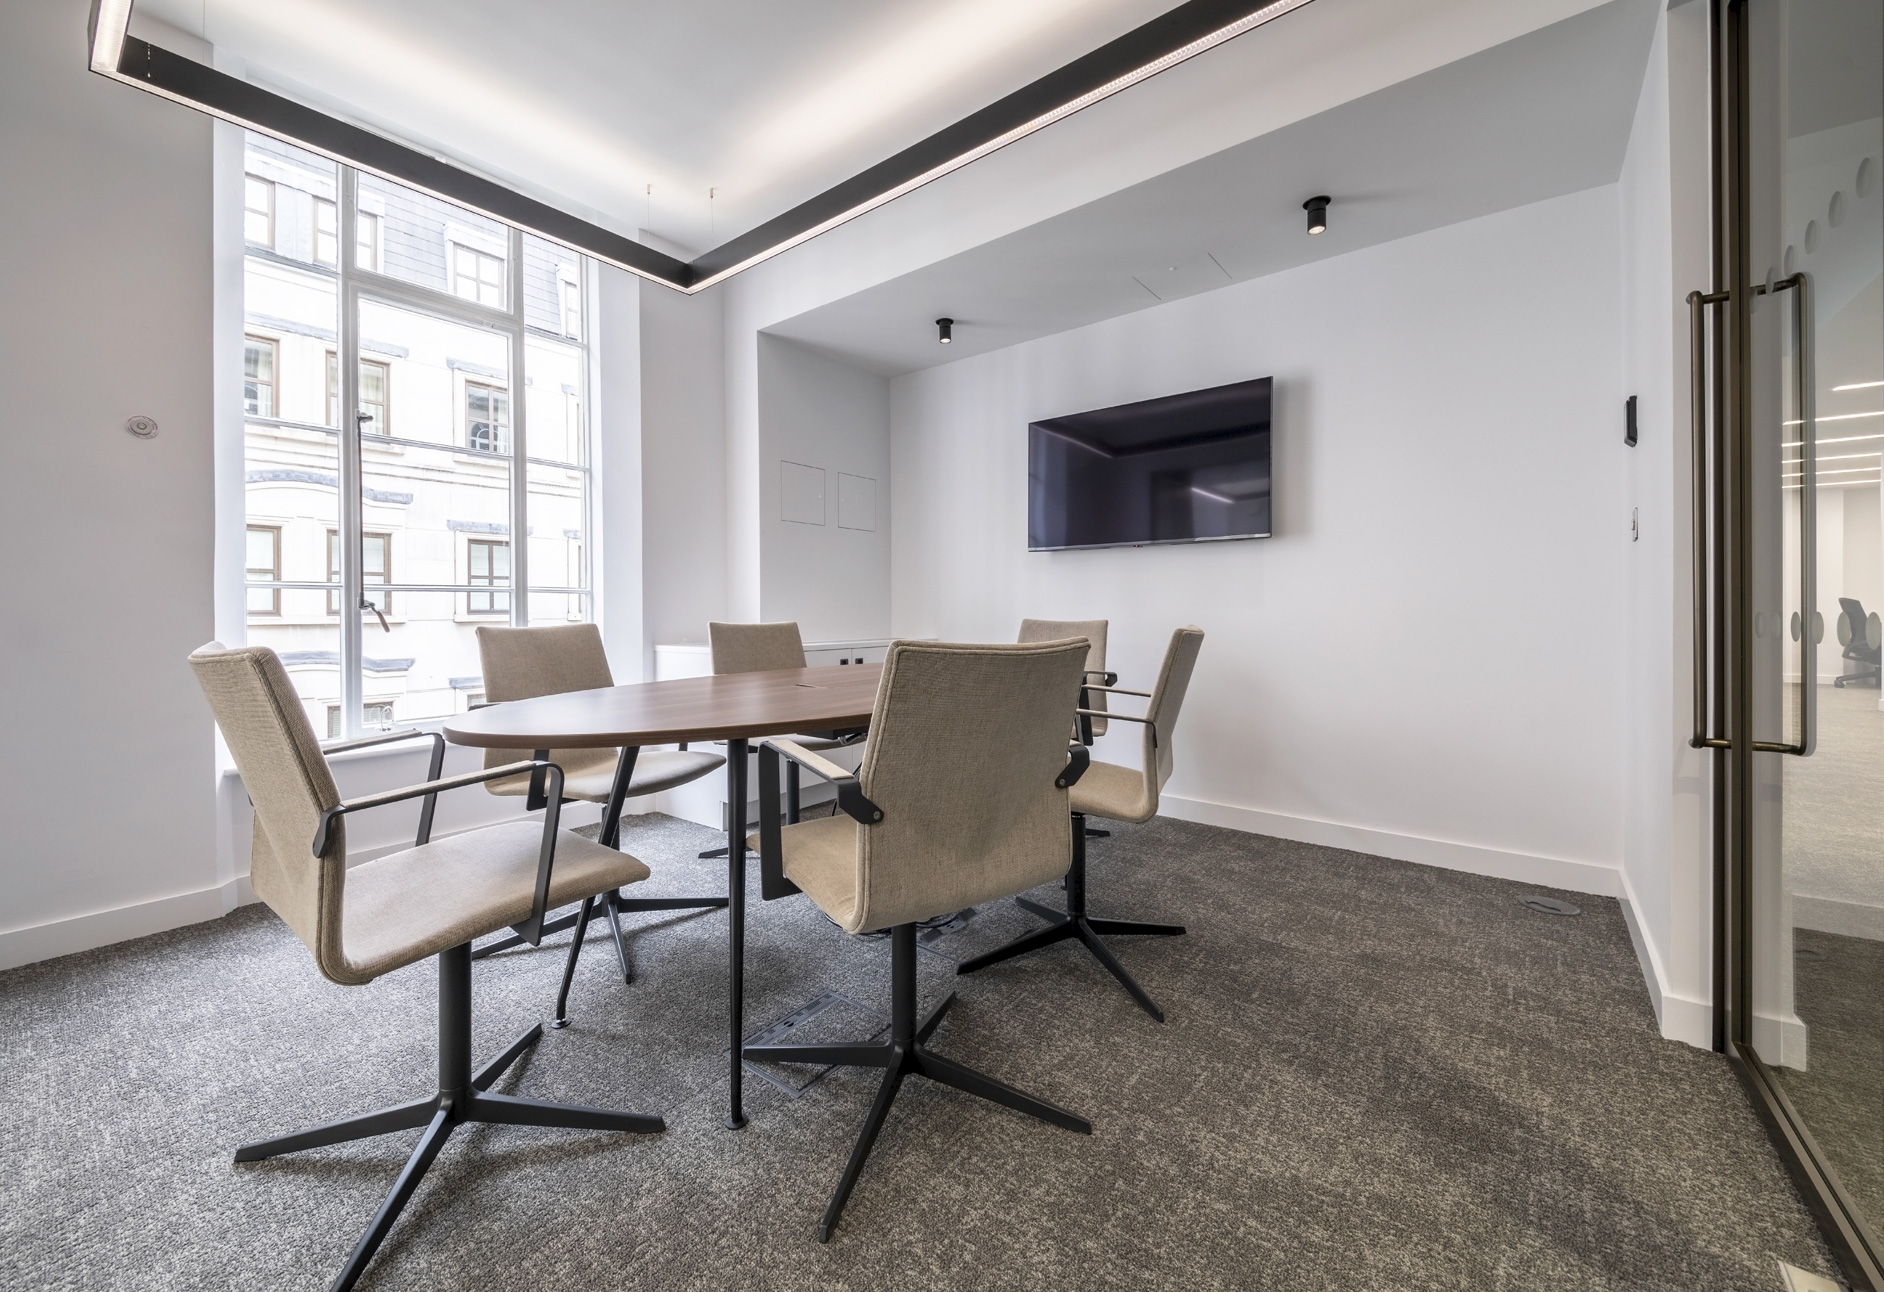 Your own meeting rooms.